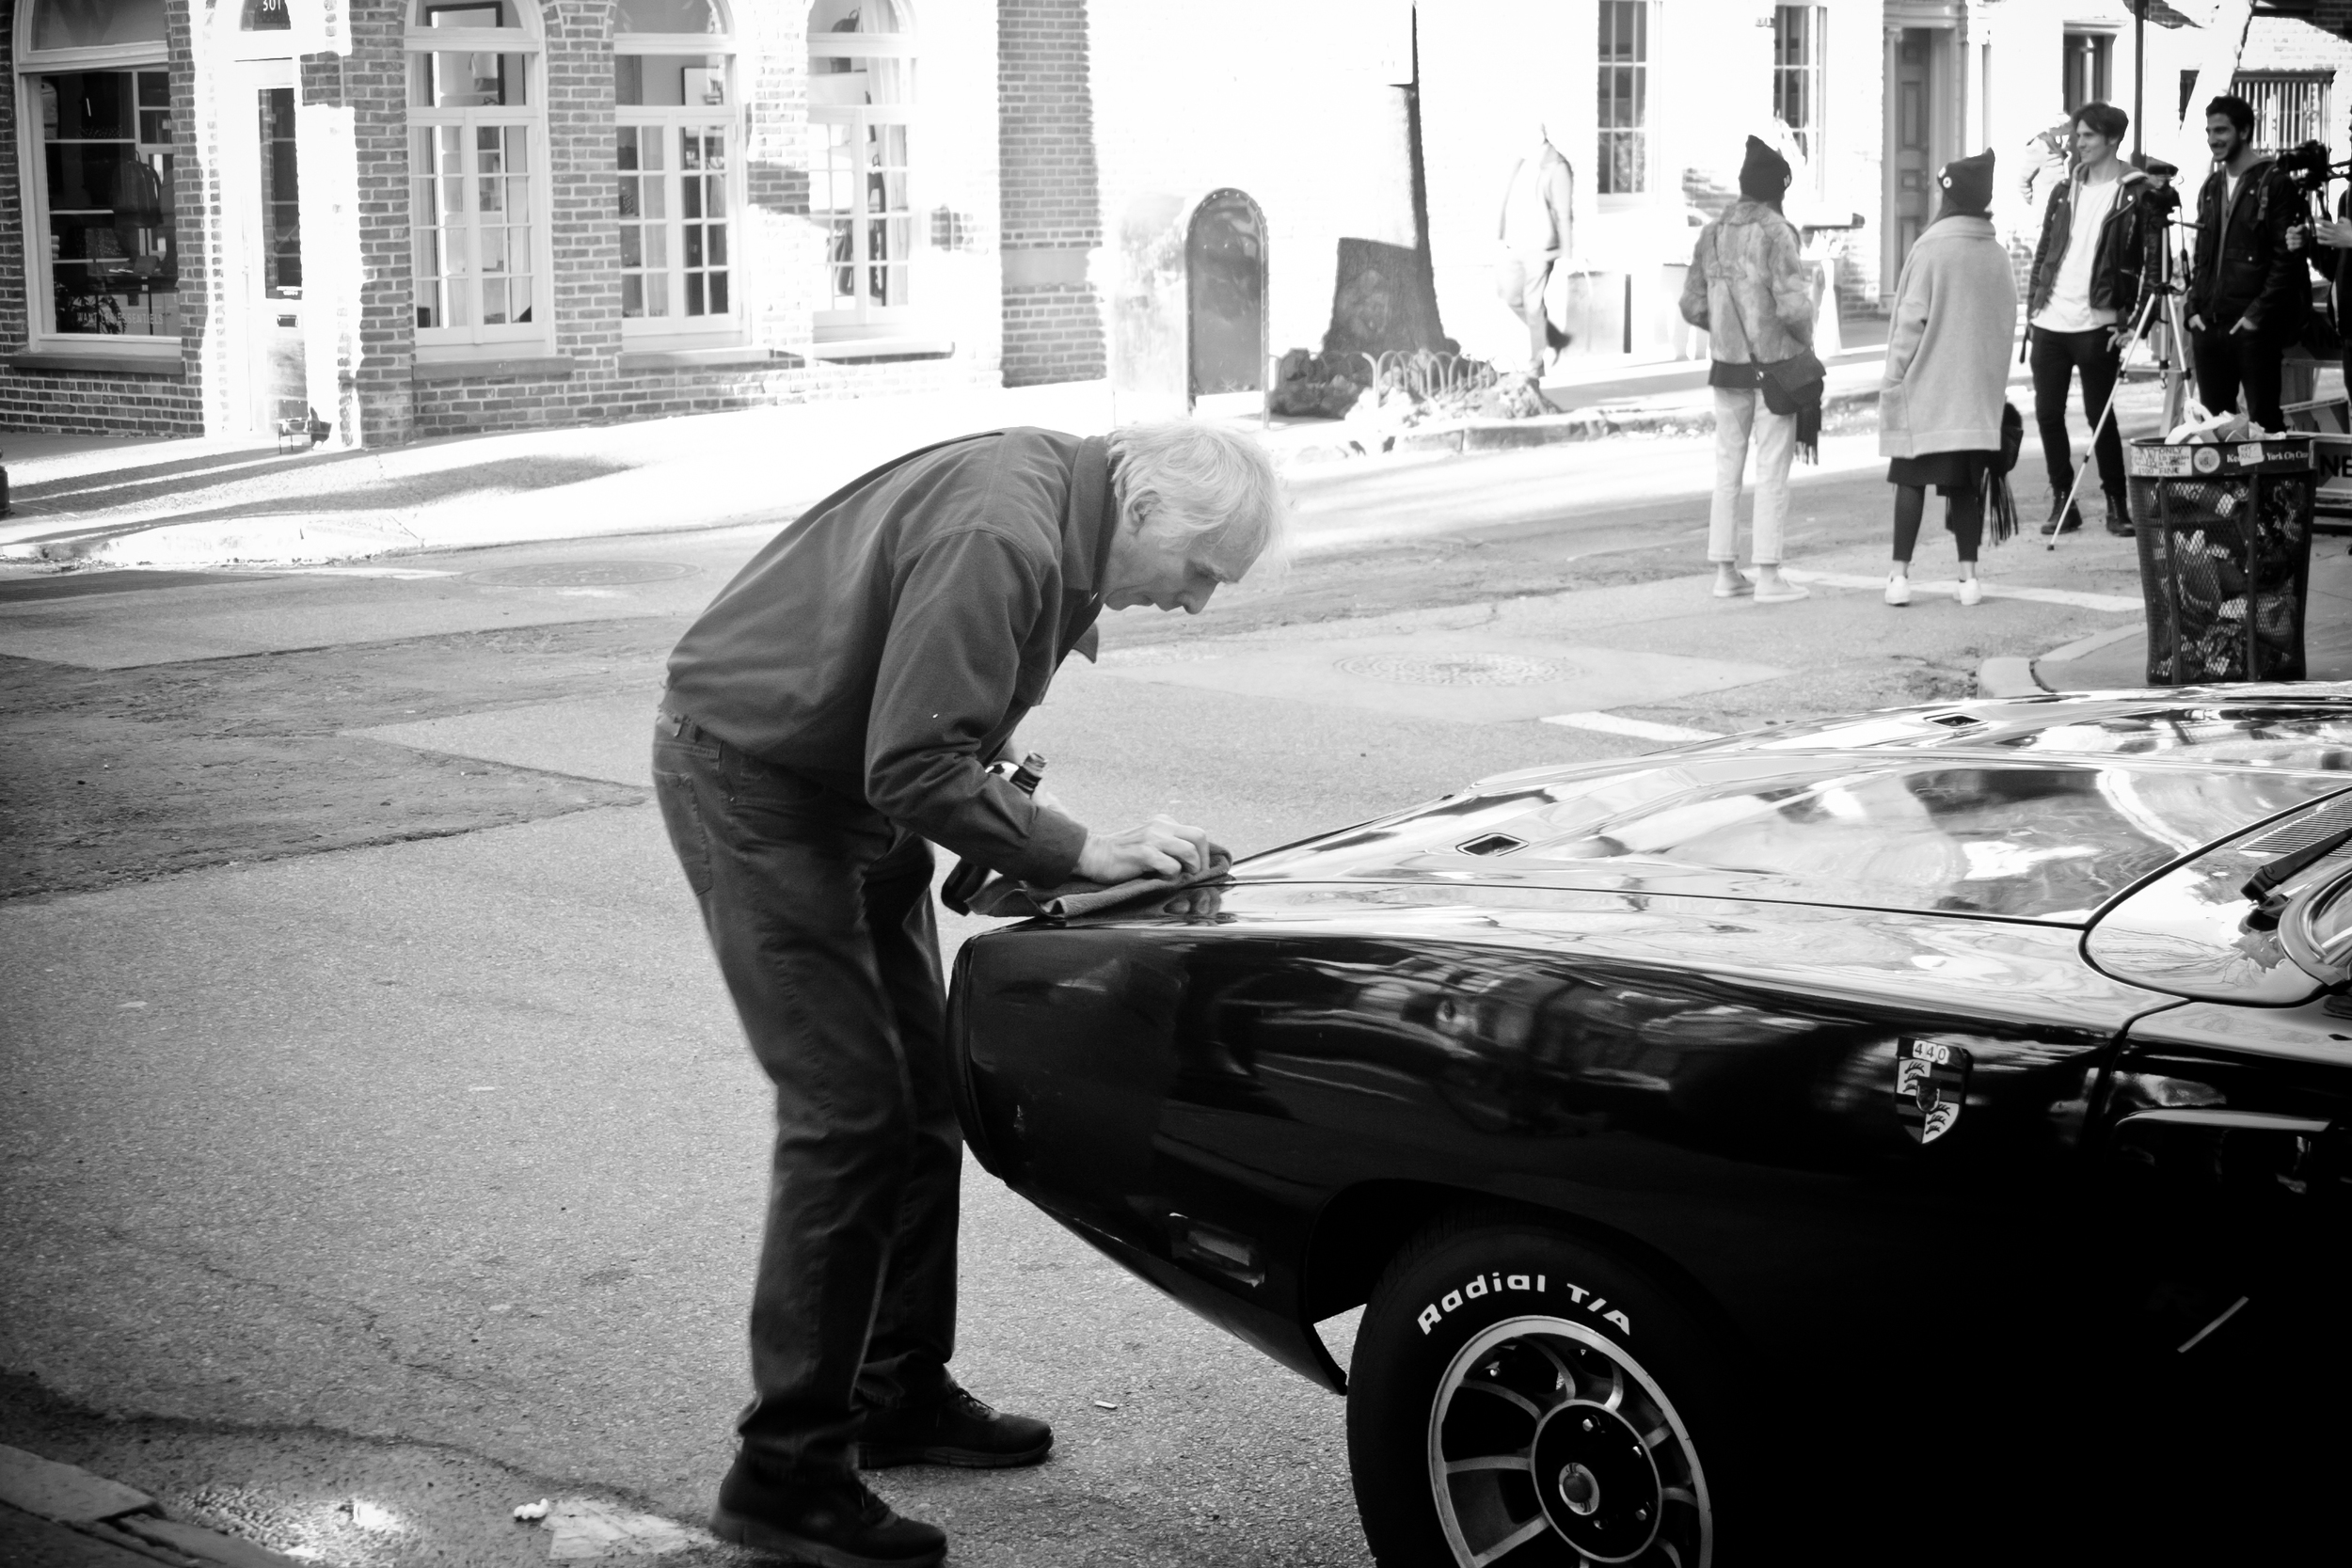 One of New York City's car lovers I met on a recent weekend photo walk. This man told us he bought the Charger from his deceased buddy's widow. He admitted to being a perfectionist and loving the car in black.